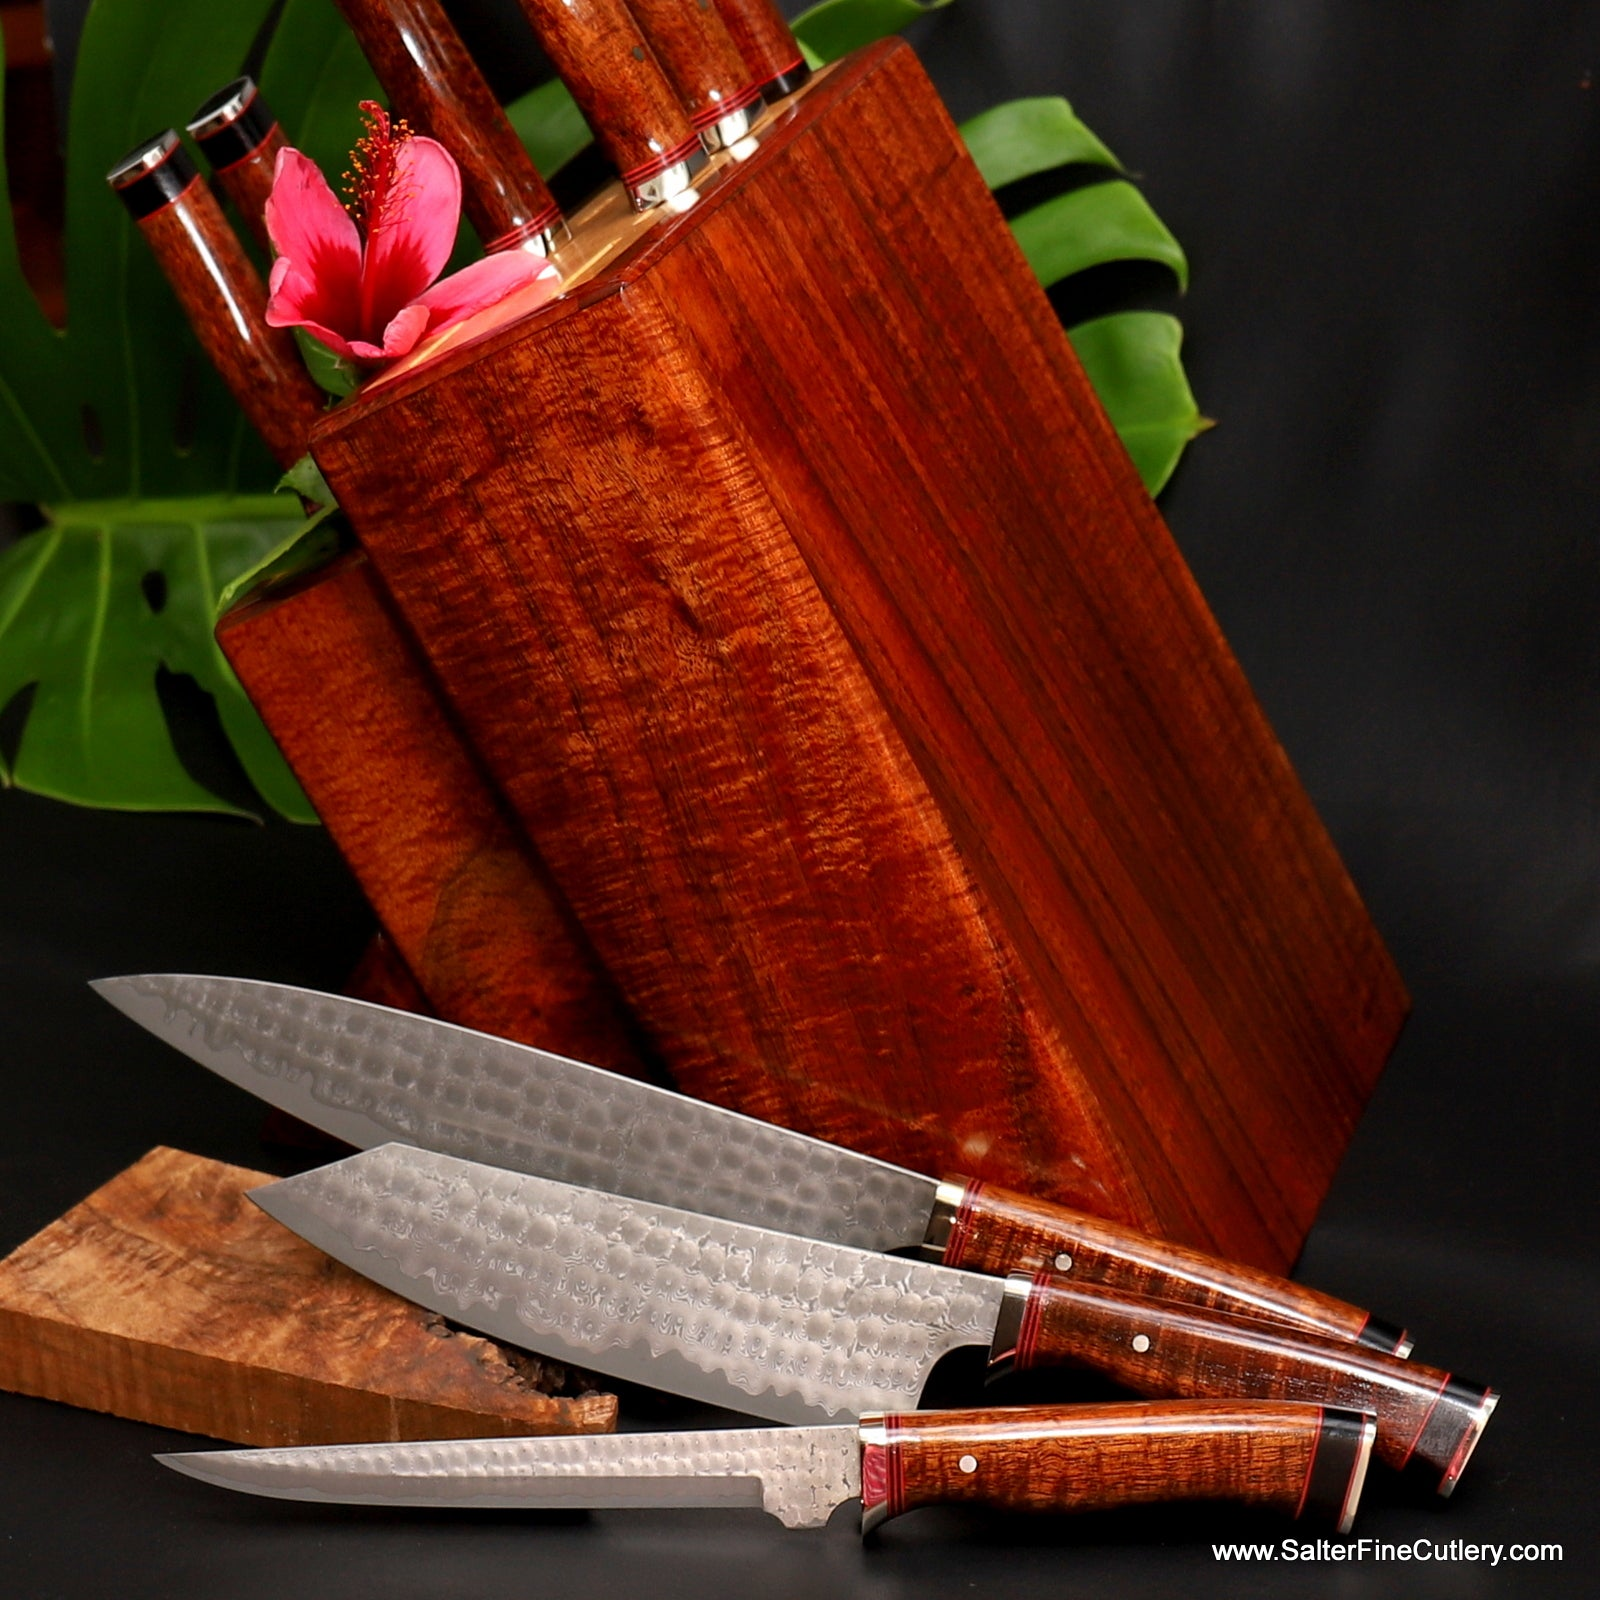 Handmade luxury decor for kitchen and home large custom chef knife set in block stand by Salter Fine Cutlery of Hawaii